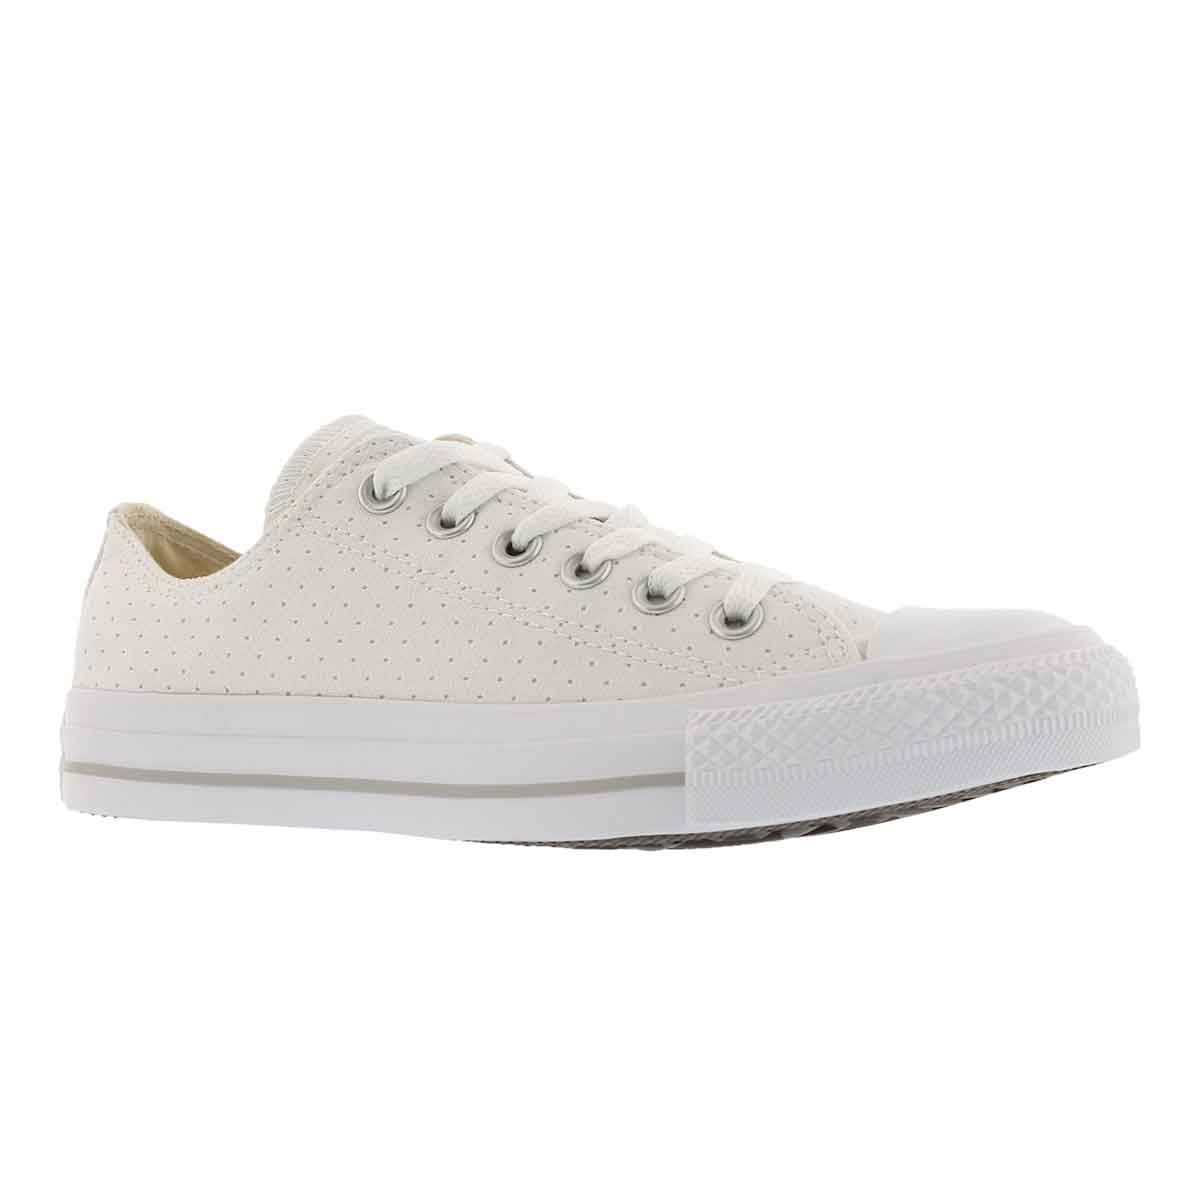 59867a709fdc92 Converse Women s CT ALL STAR PERFORATED white